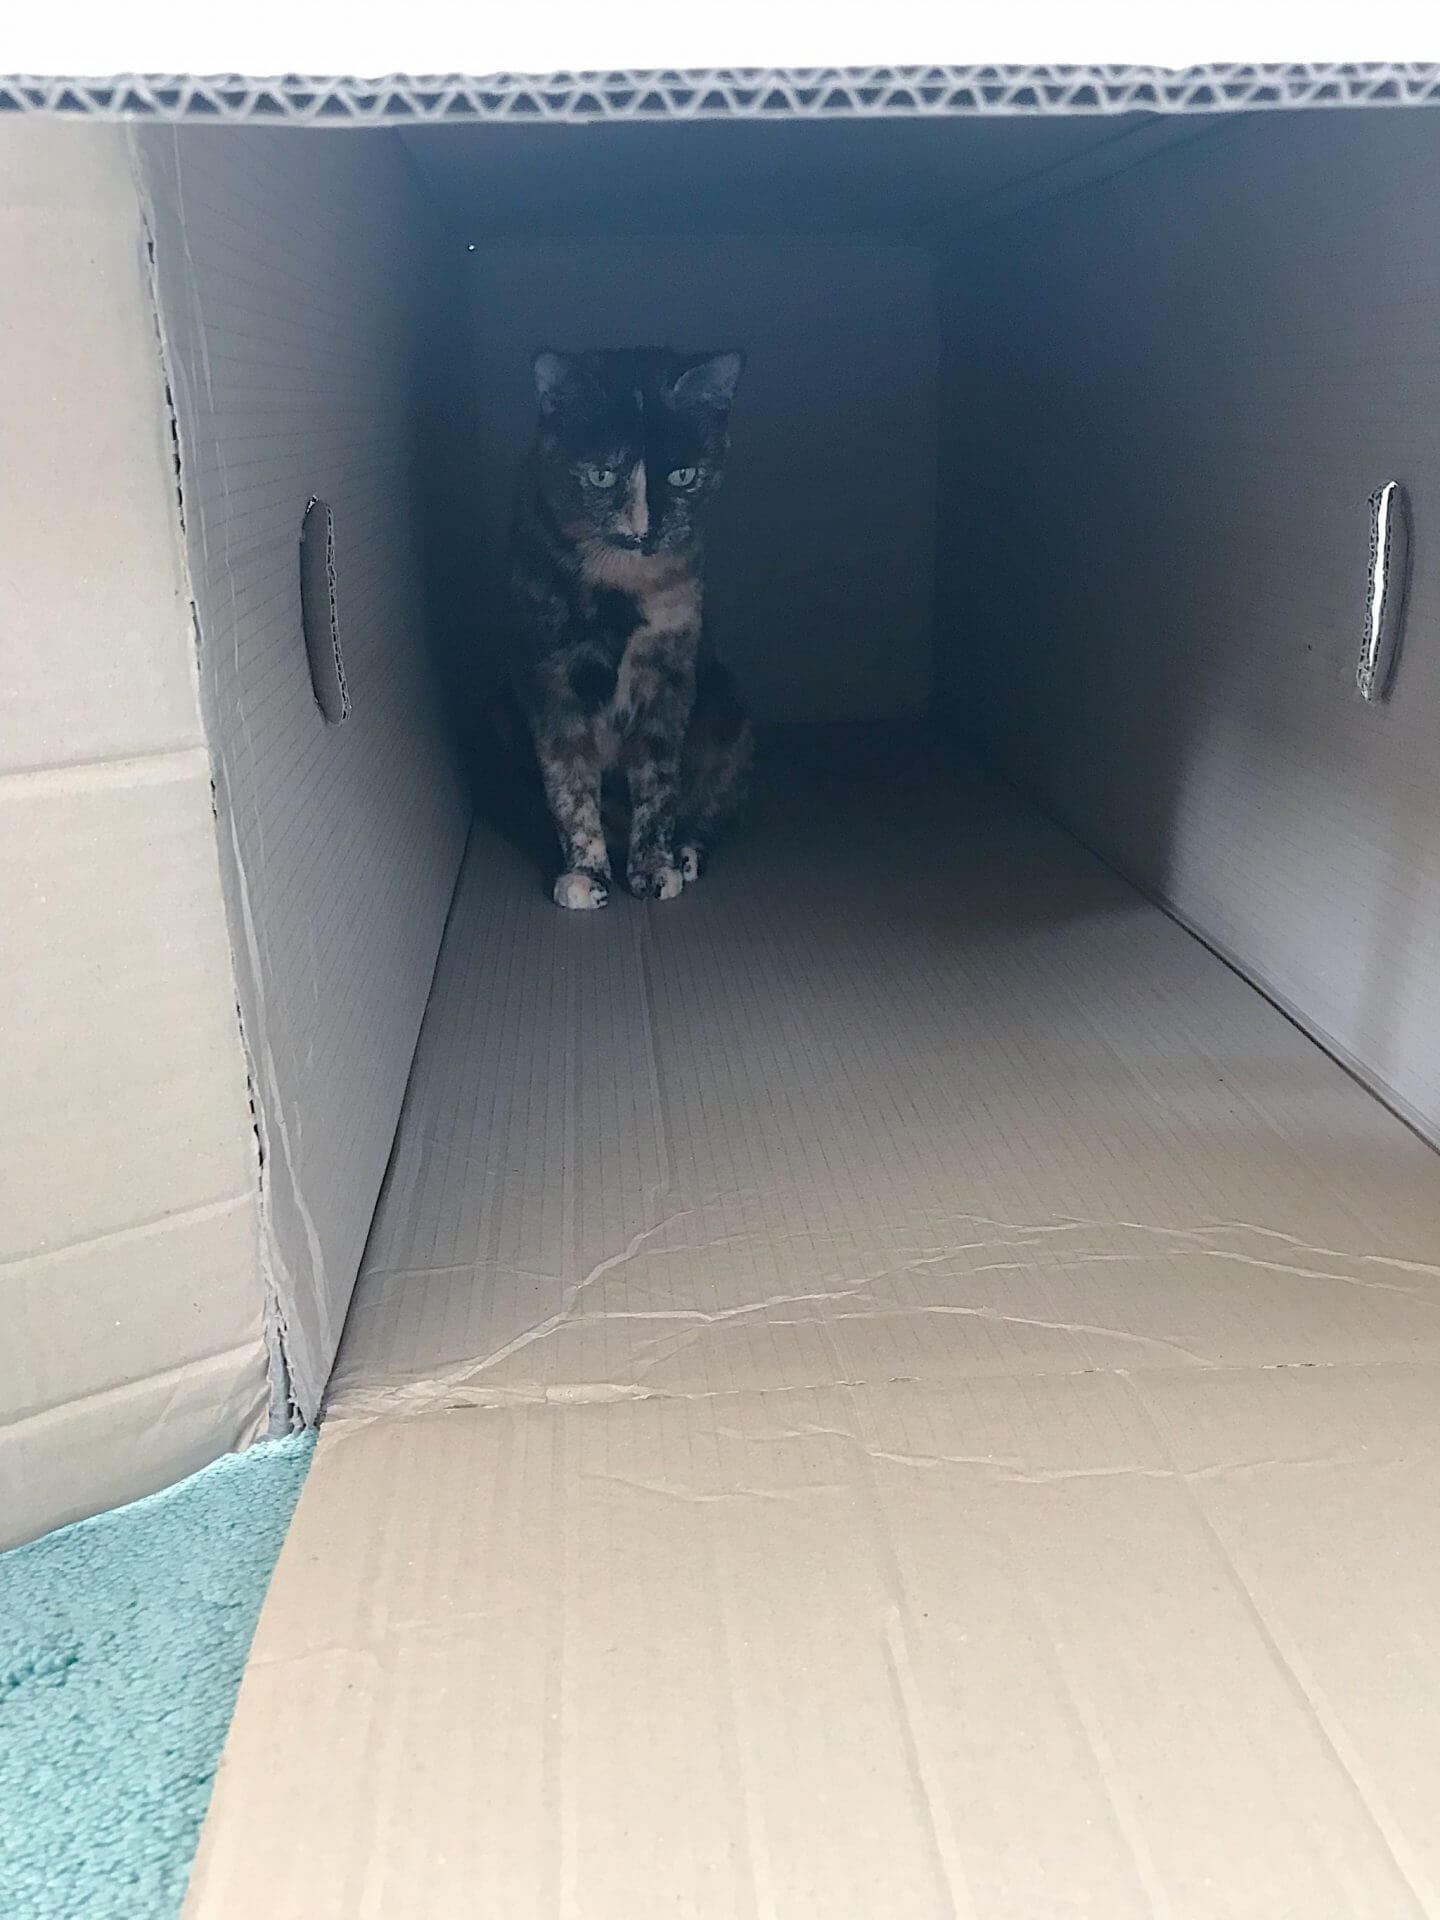 Empty Leesa mattress box with cat inside